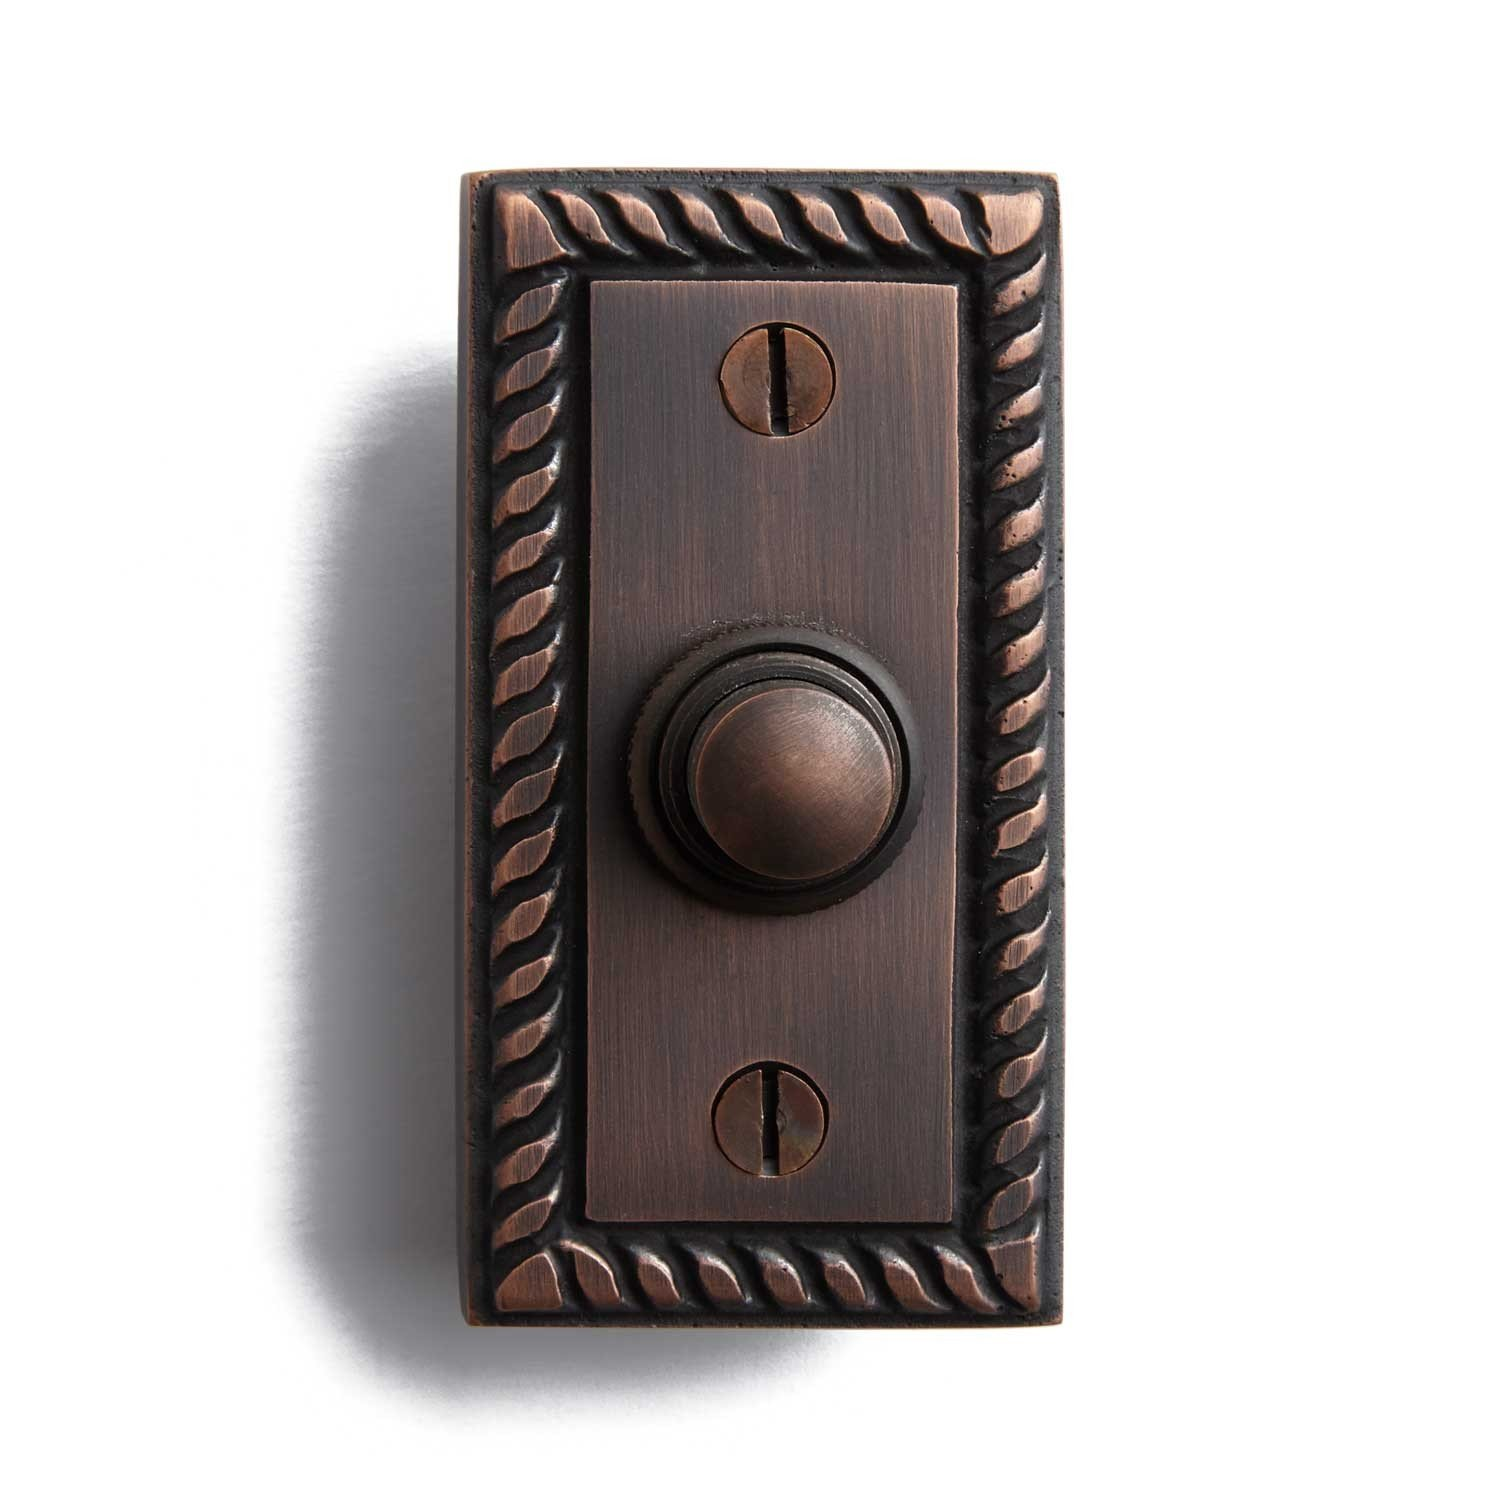 Casa Hardware Solid Brass Rectangular Doorbell with Push Button in Oil Rubbed Bronze Finish by SIGHW